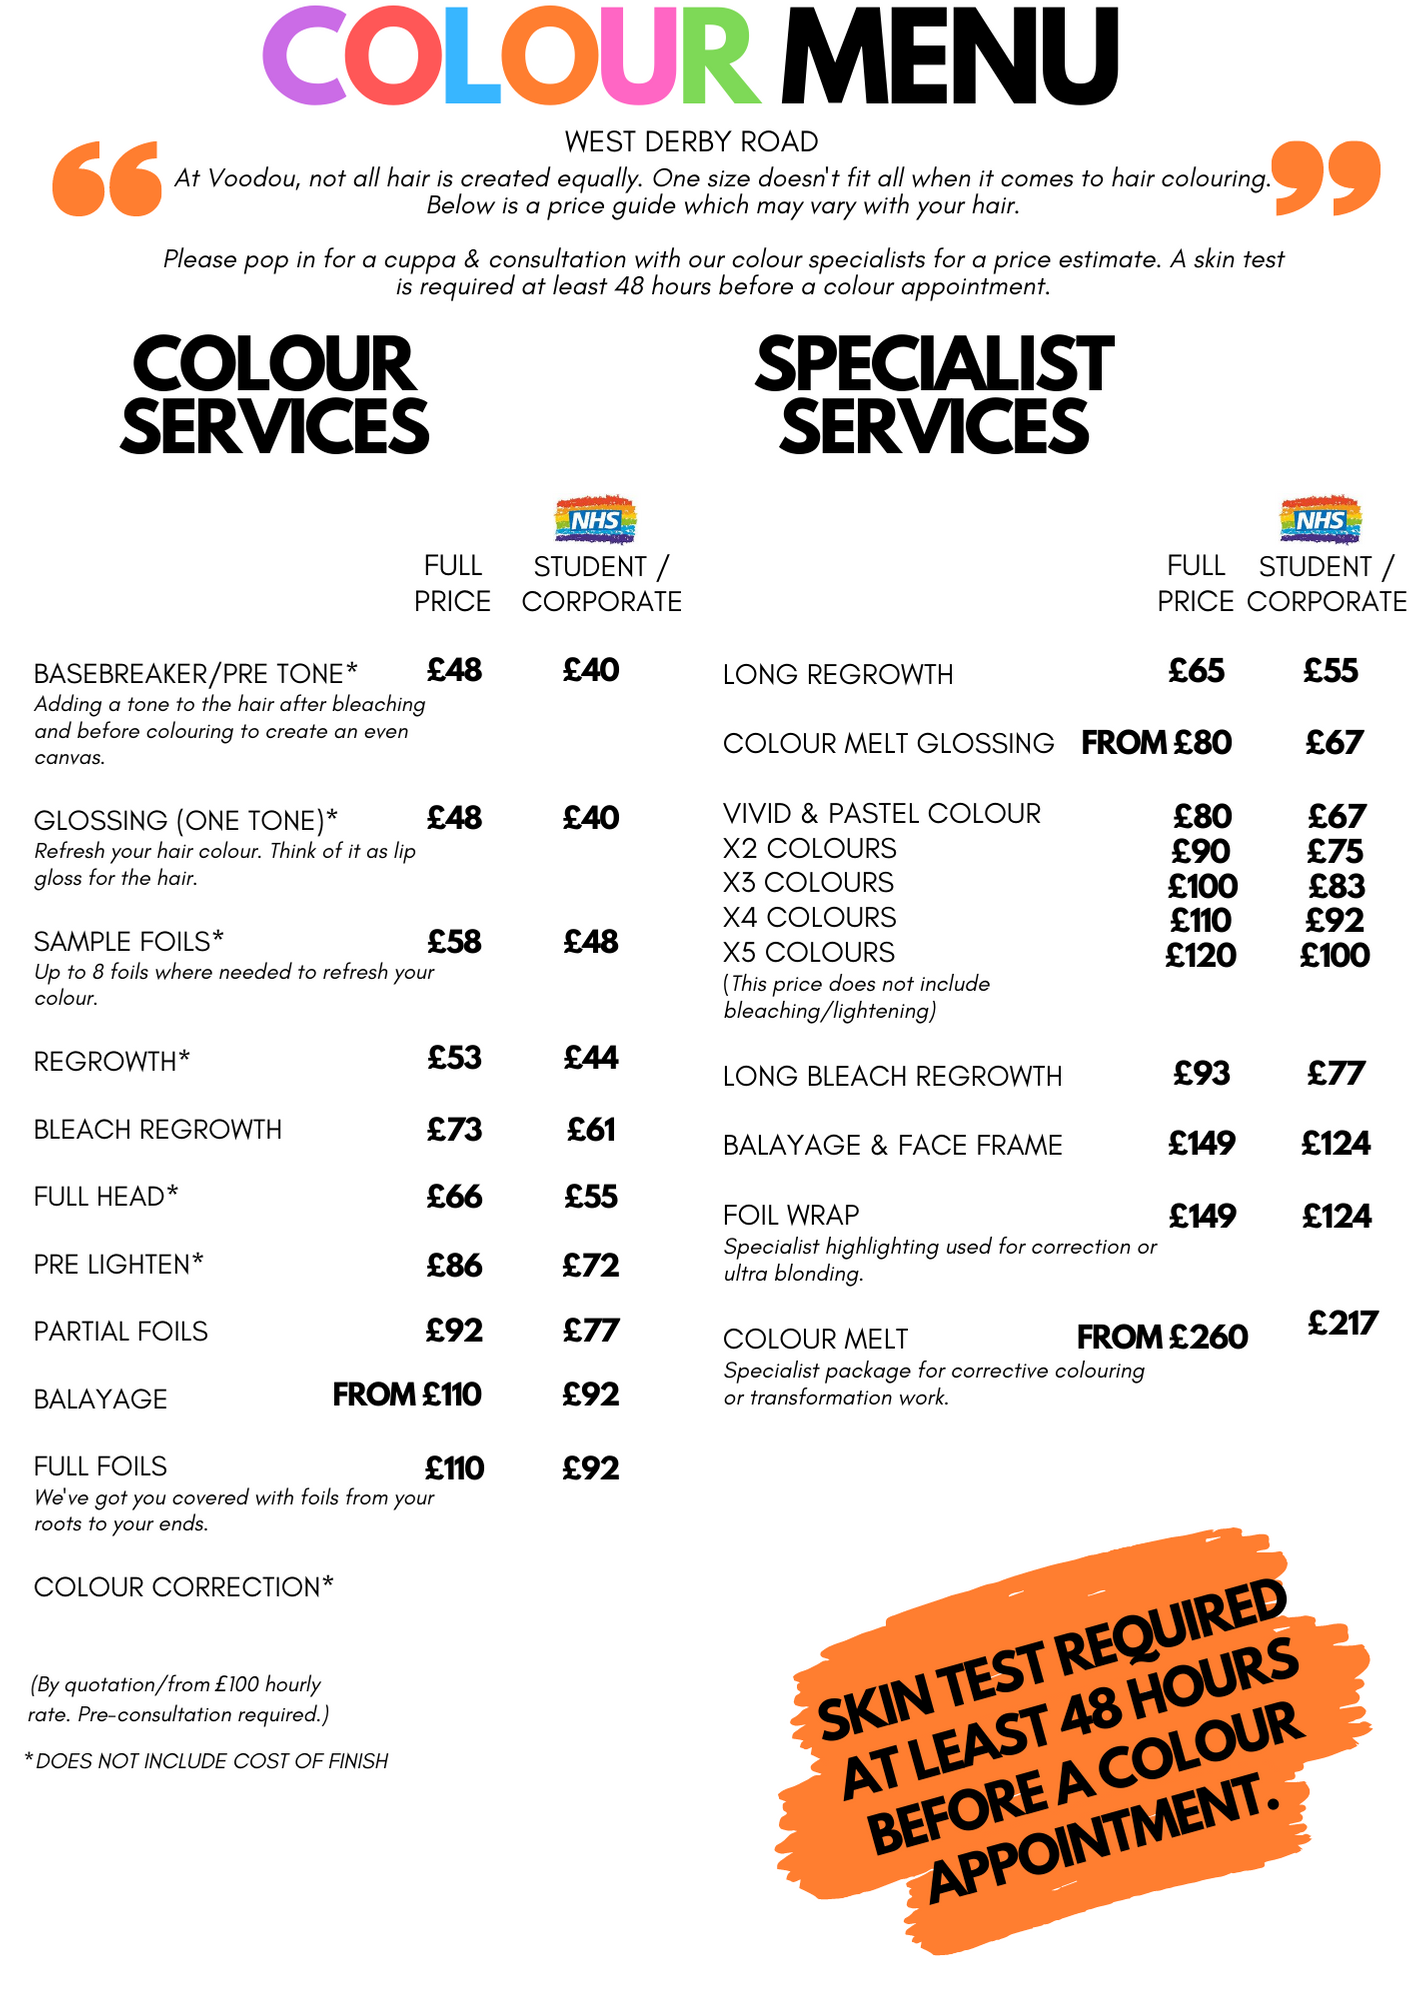 WDR NEW PRICE LIST